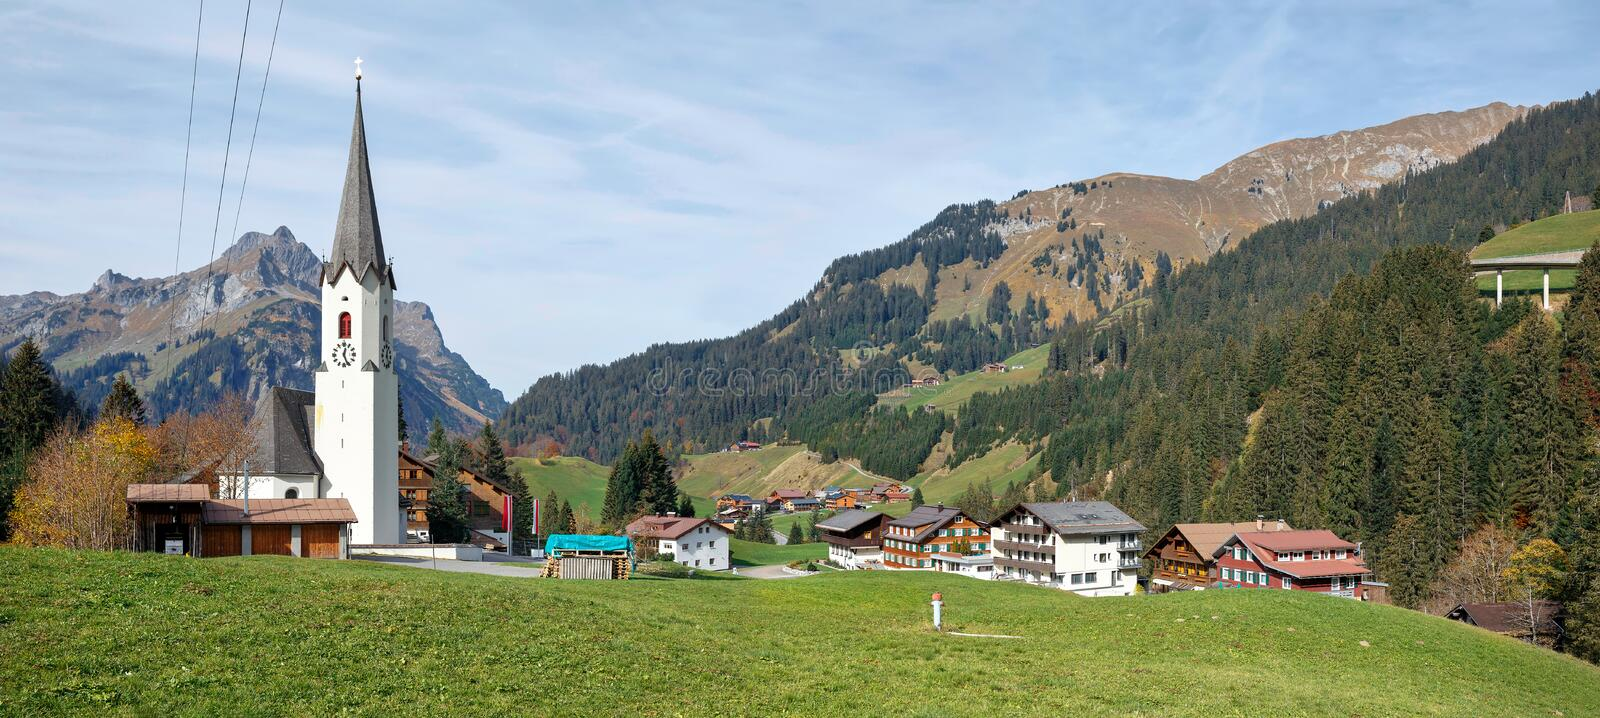 Panoramic view of the alpine village Schroecken in the fall. State of Vorarlberg, Austria, Europe stock images